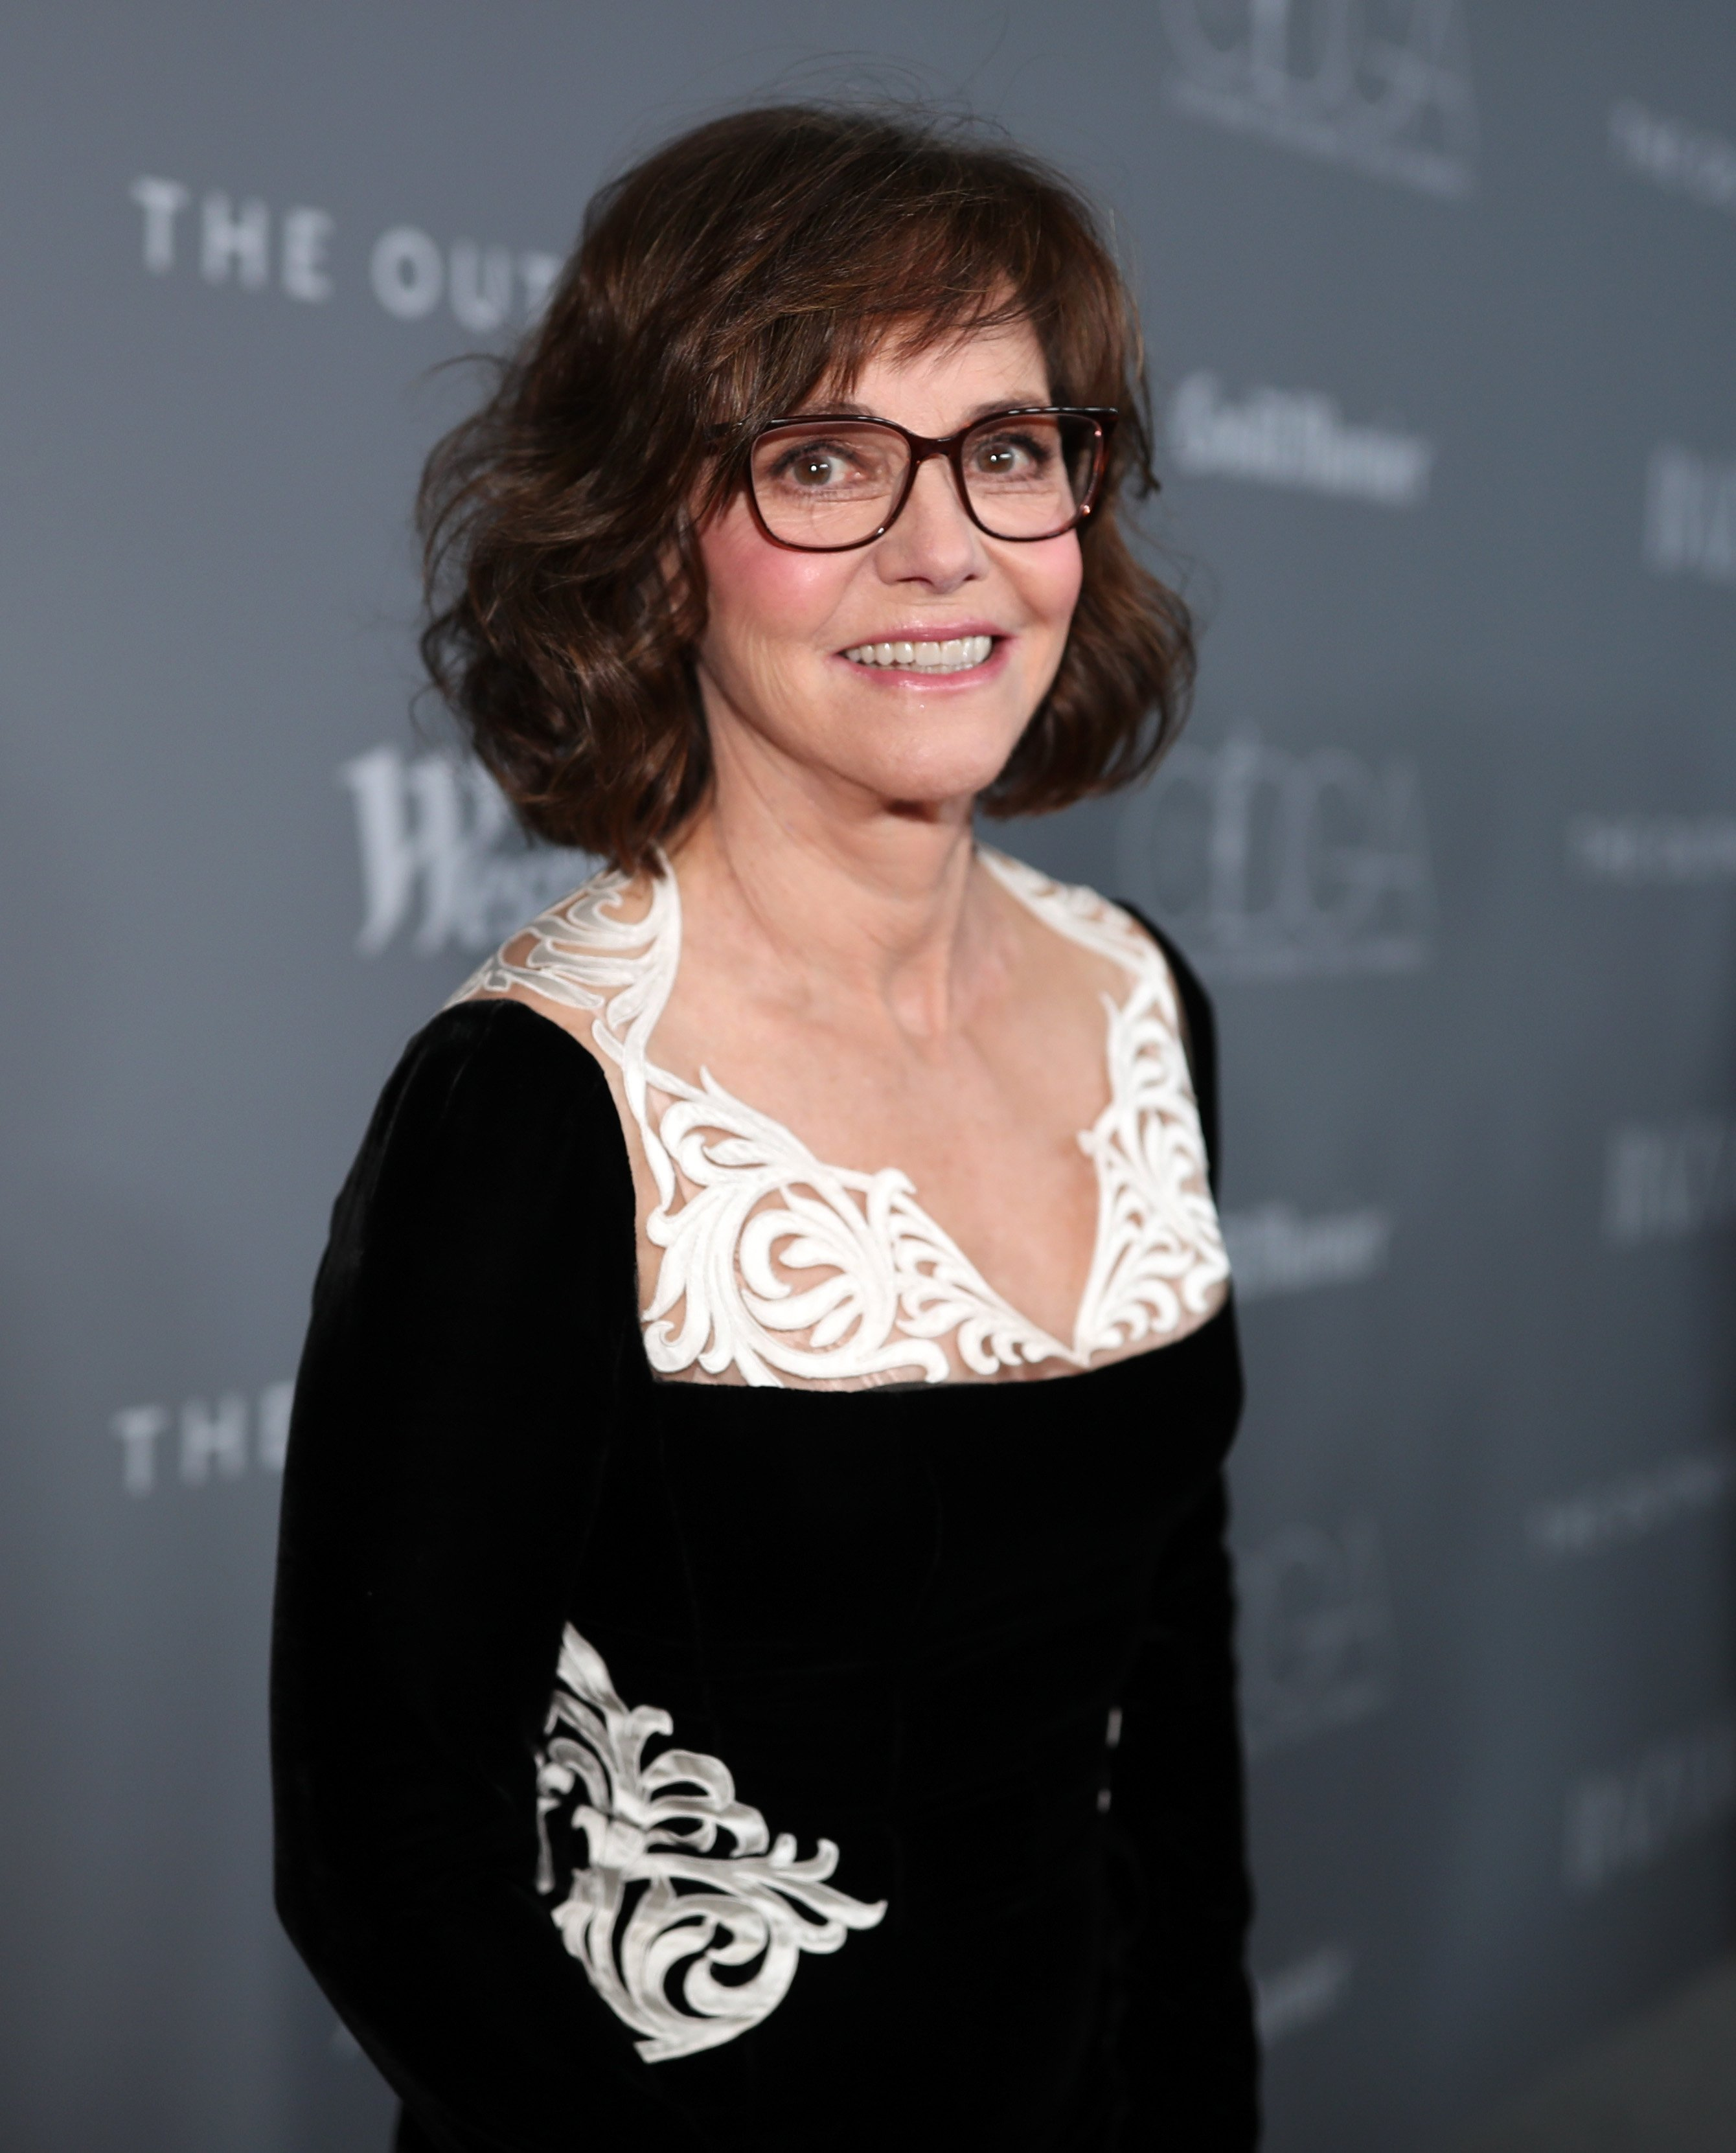 Sally Field attends the Costume Designers Guild Awards at The Beverly Hilton Hotel on February 20, 2018, in Beverly Hills, California. | Source: Getty Images.